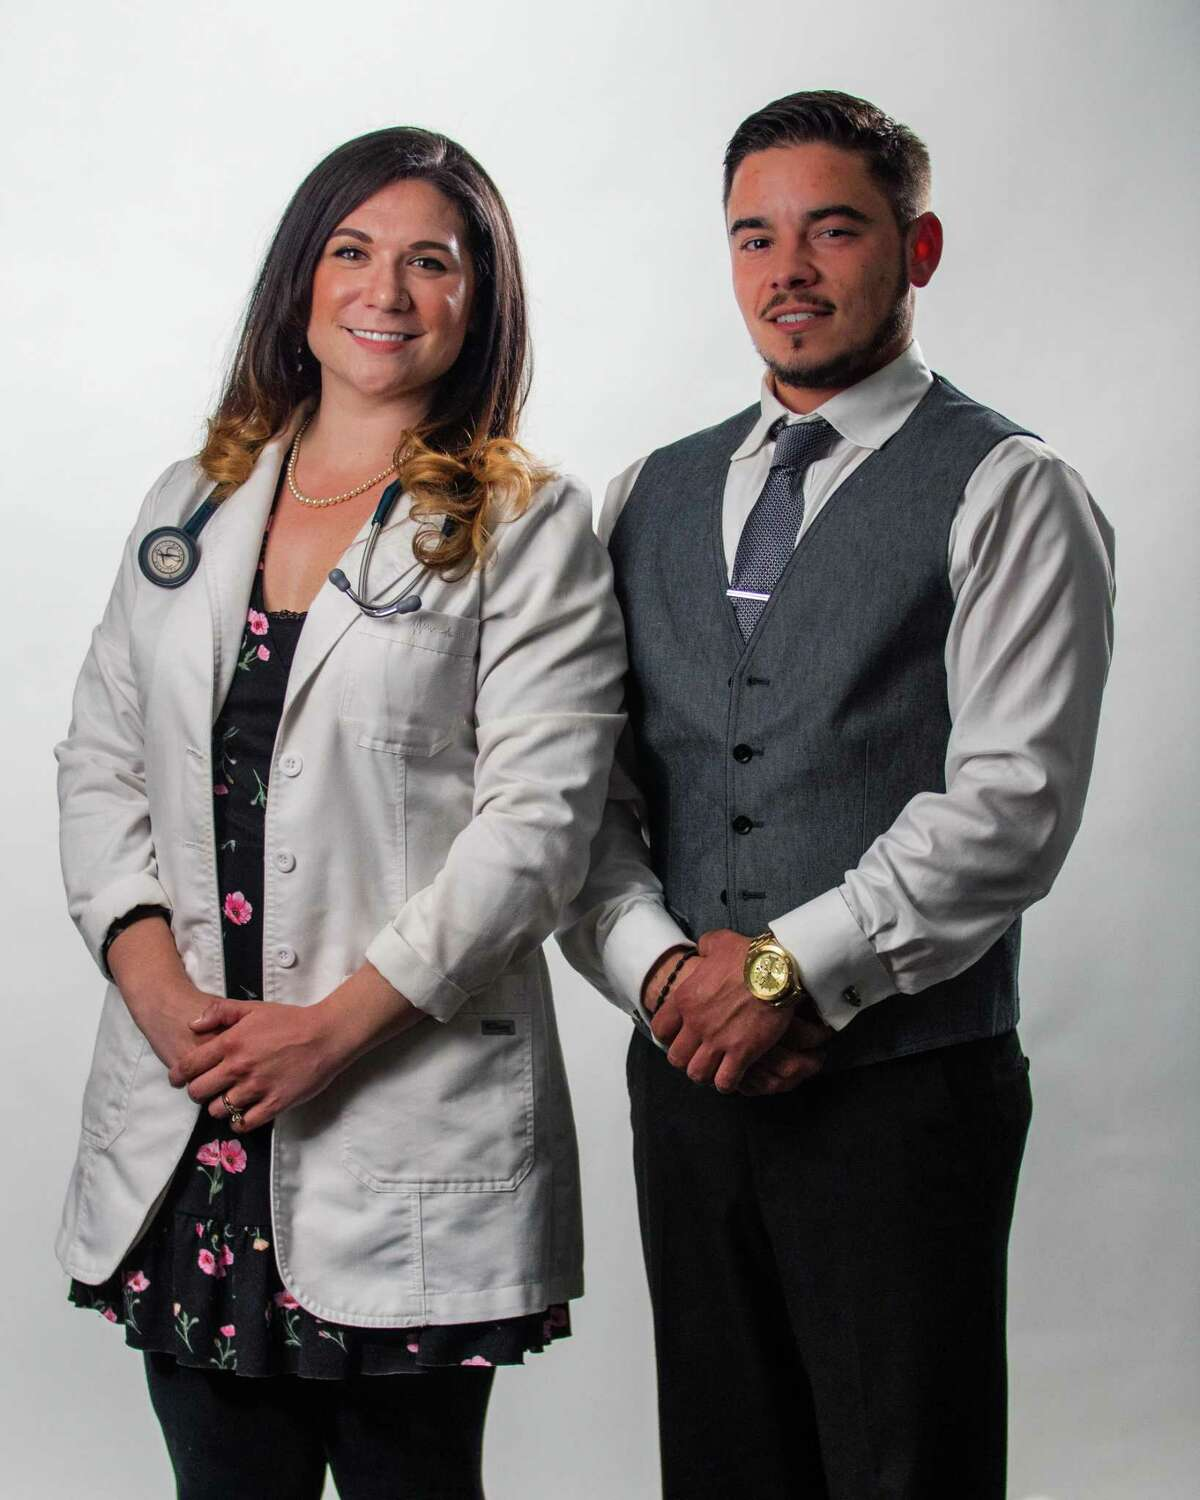 A new business, Mobile Care Partners of Connecticut, is up, and running, bringing health care to residents' doorsteps, and providing acute, and chronic primary medical care for adults ages 18-years-old, and older in their homes in Litchfield County, Southbury and the Greater Danbury area.